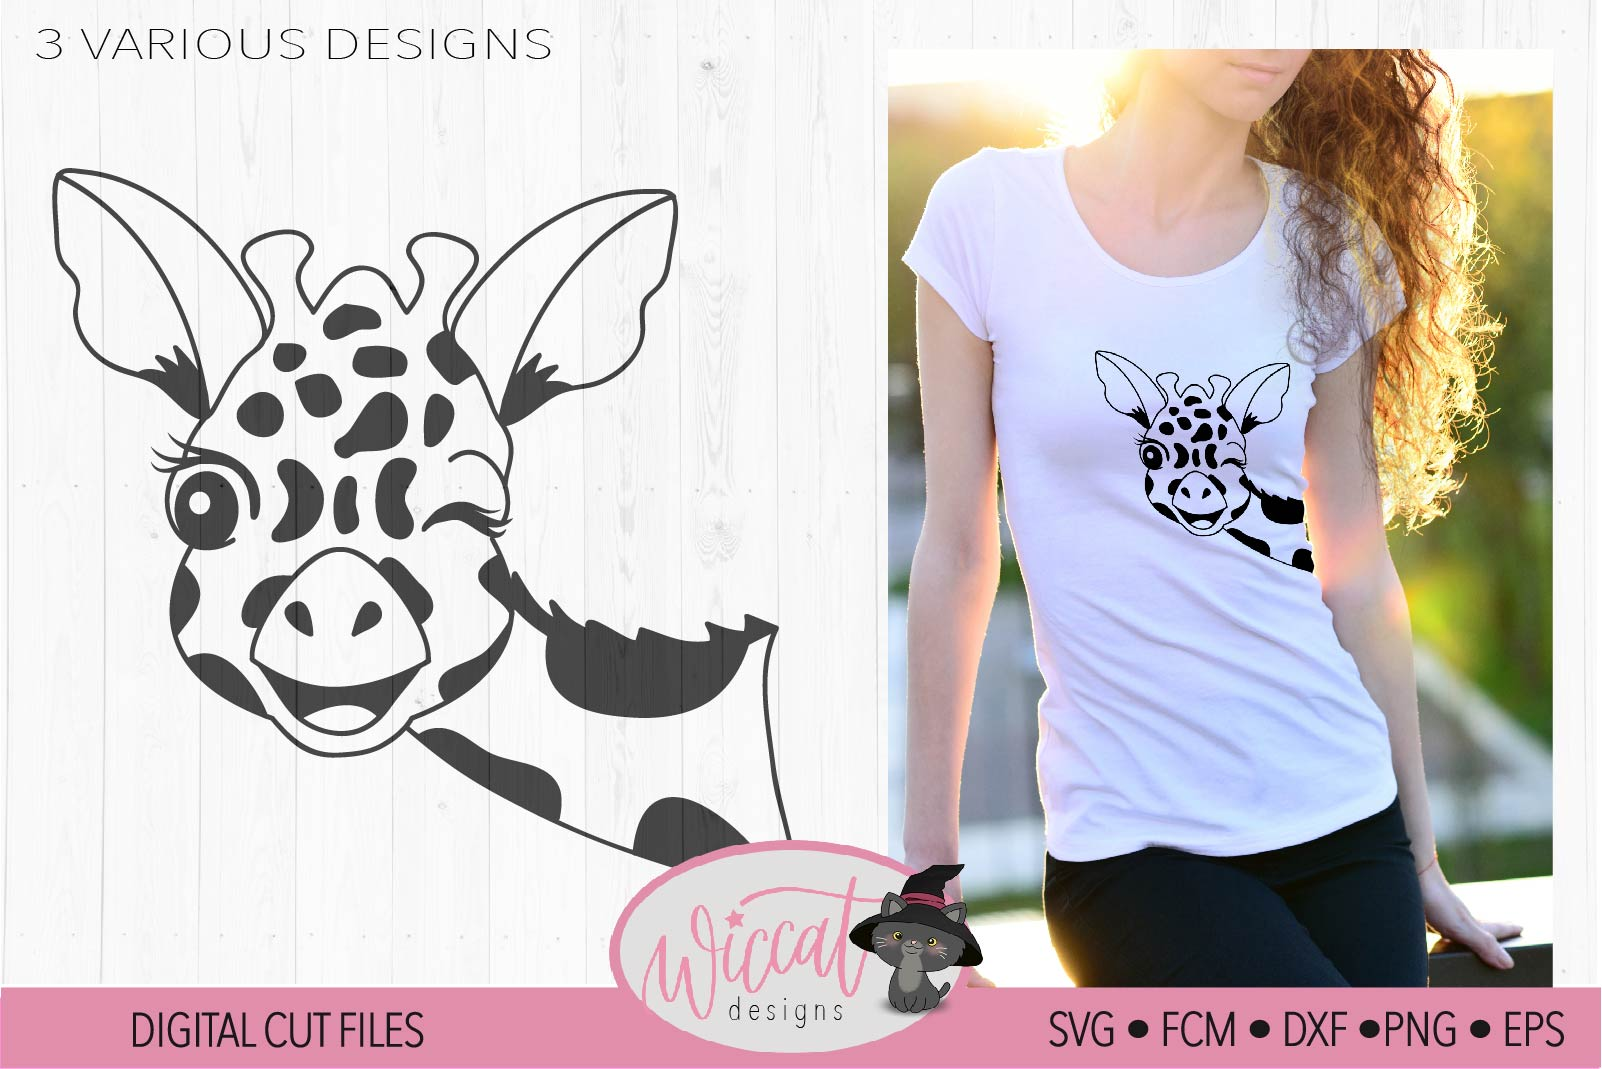 Winking Giraffe face svg, summer design example image 2